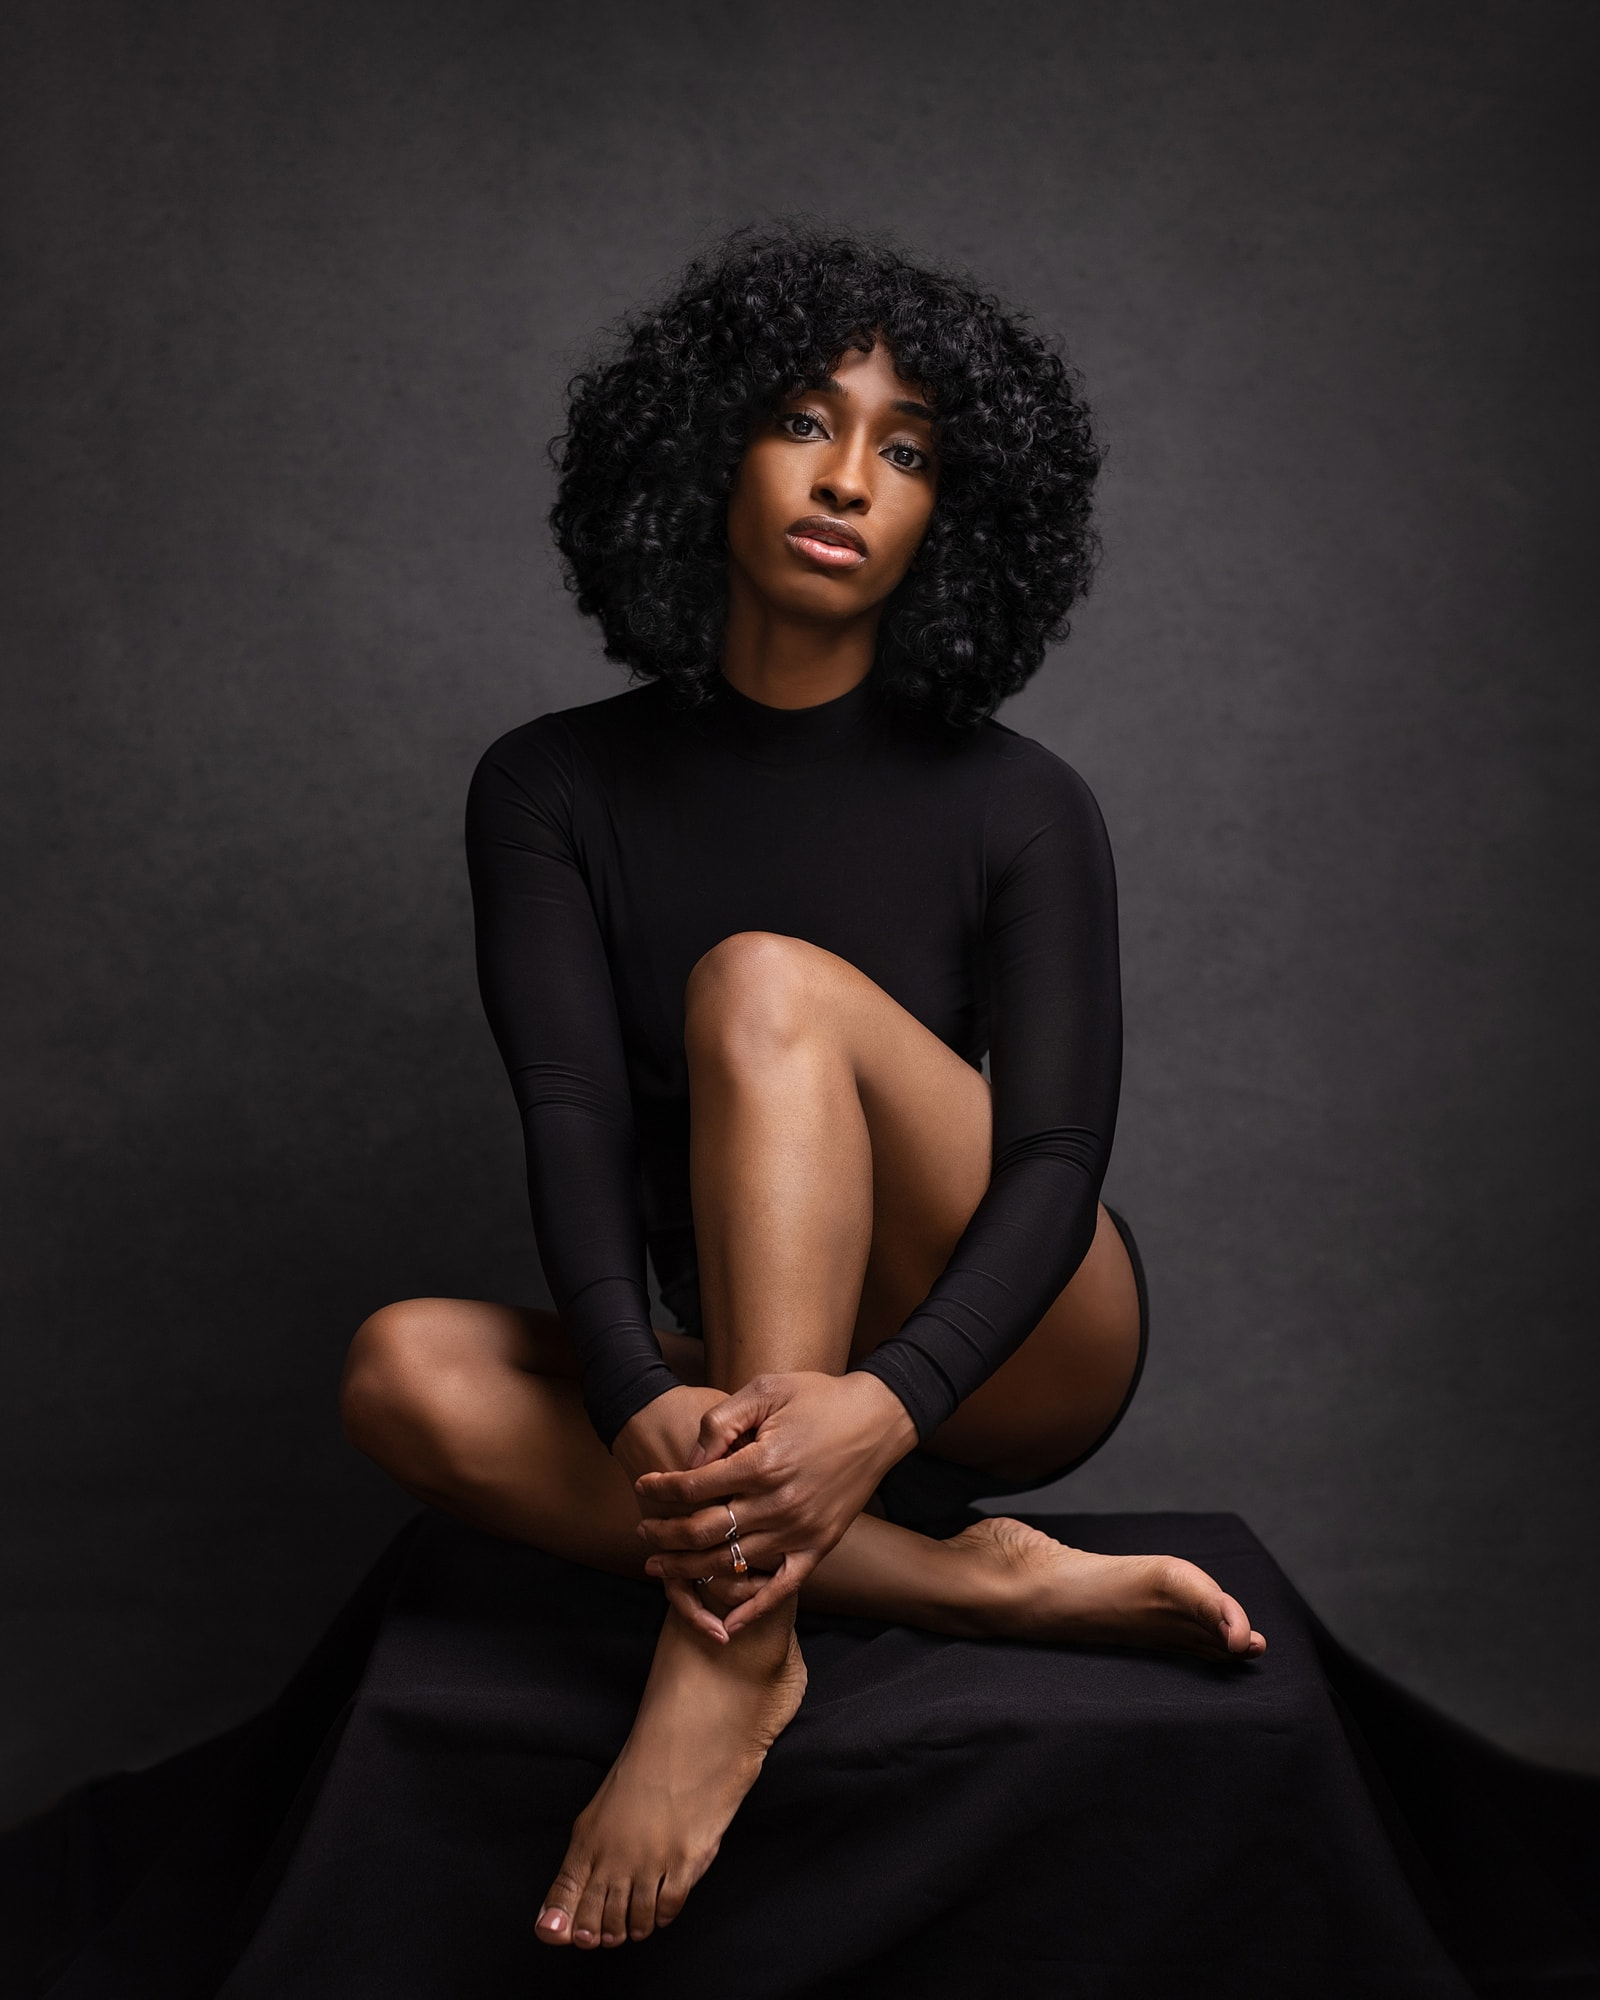 Beautiful woman in a black body suit poses by hugging her legs for a beauty shoot in Suffolk studio